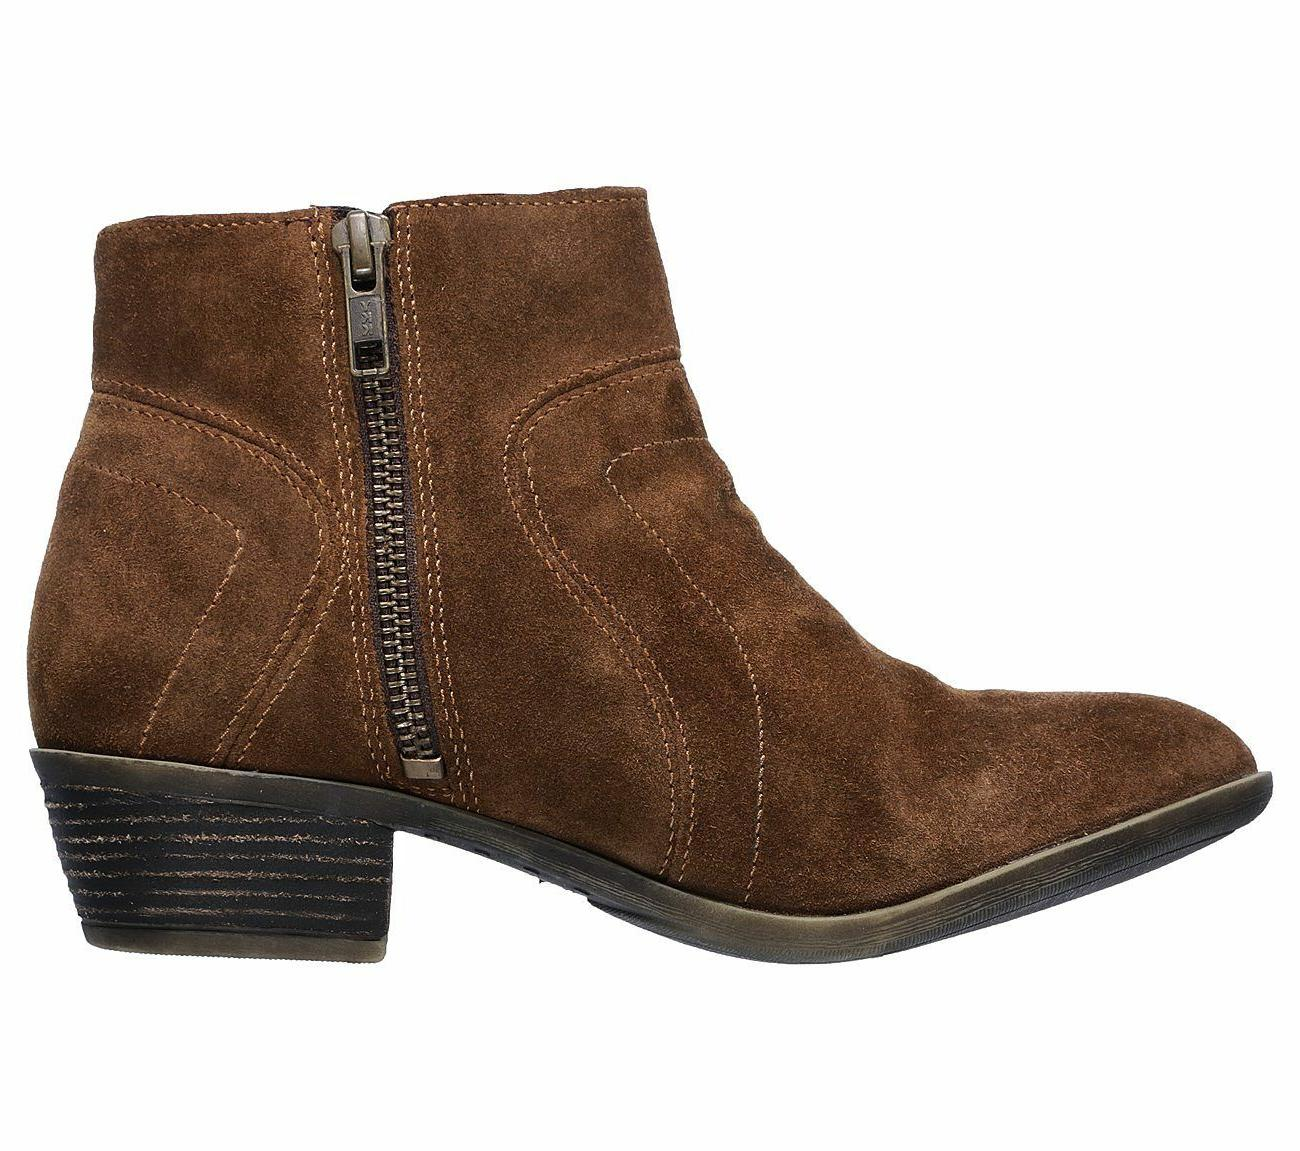 New Womens Suede Ankle Boots 48719 112G